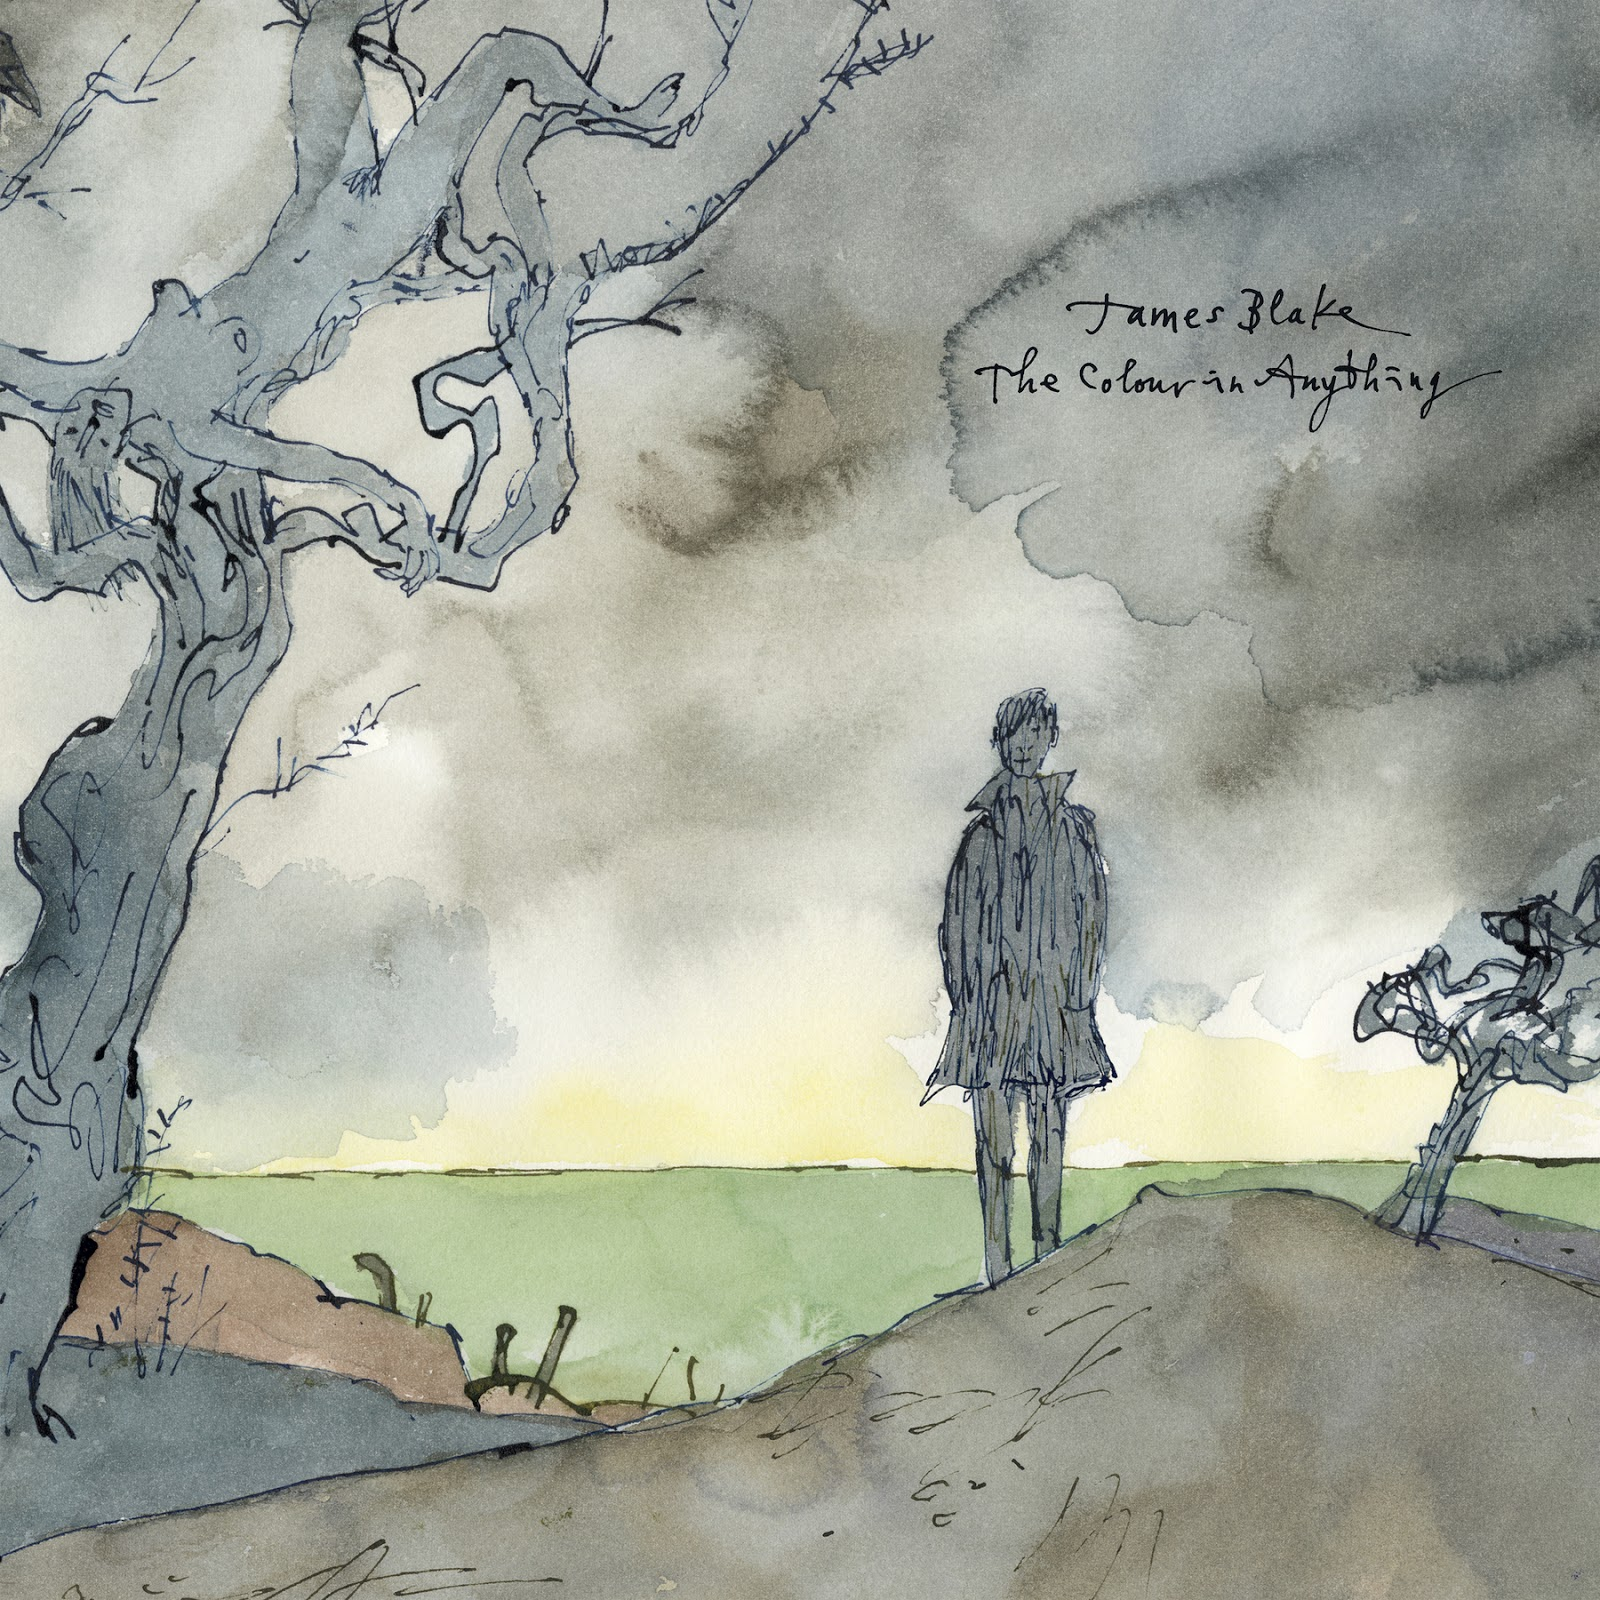 James Blake - The Colour in Anything Cover